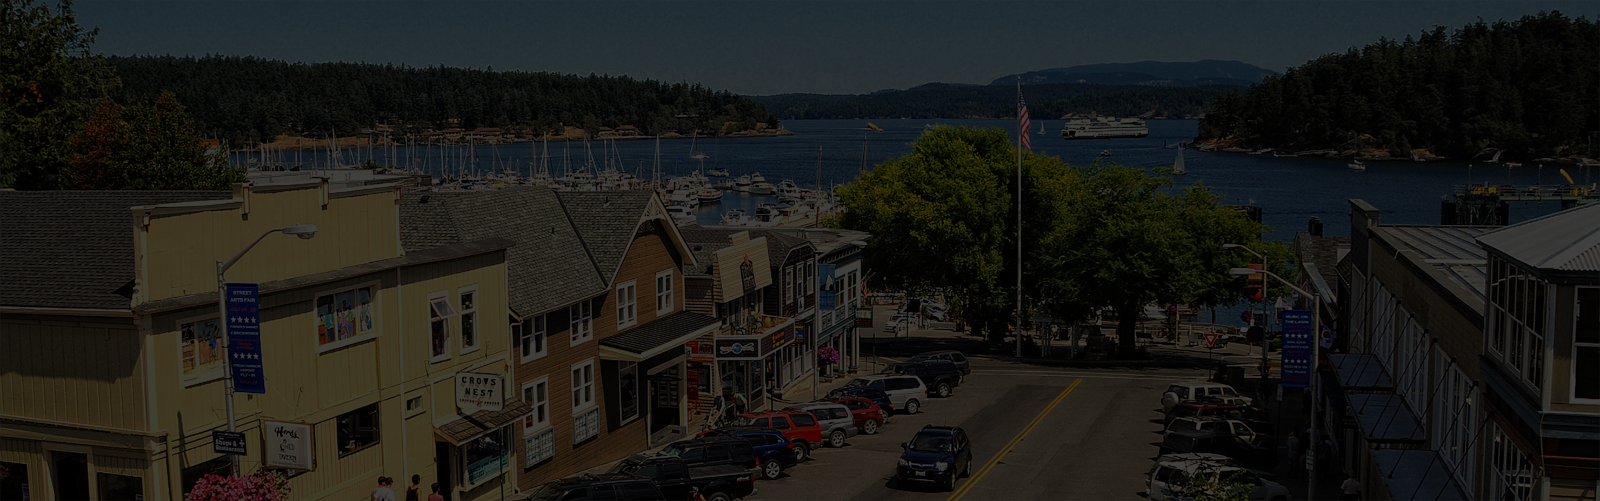 The Suites at Friday Harbor Case Study > Read More